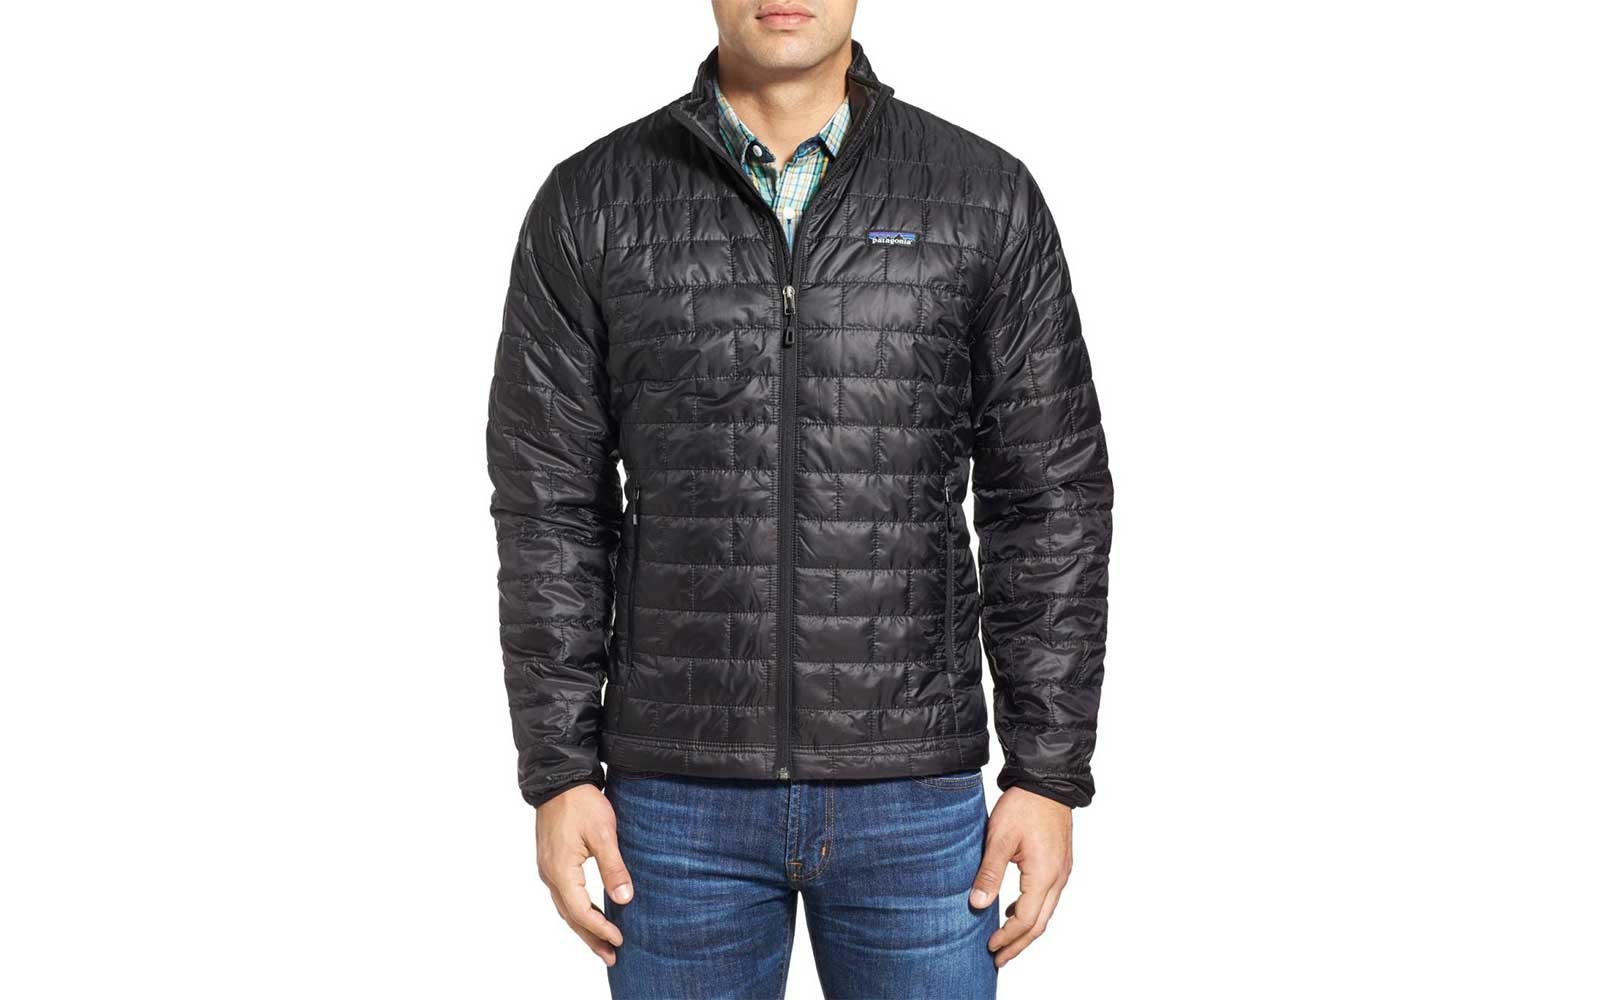 Patagonia Jackets on Sale